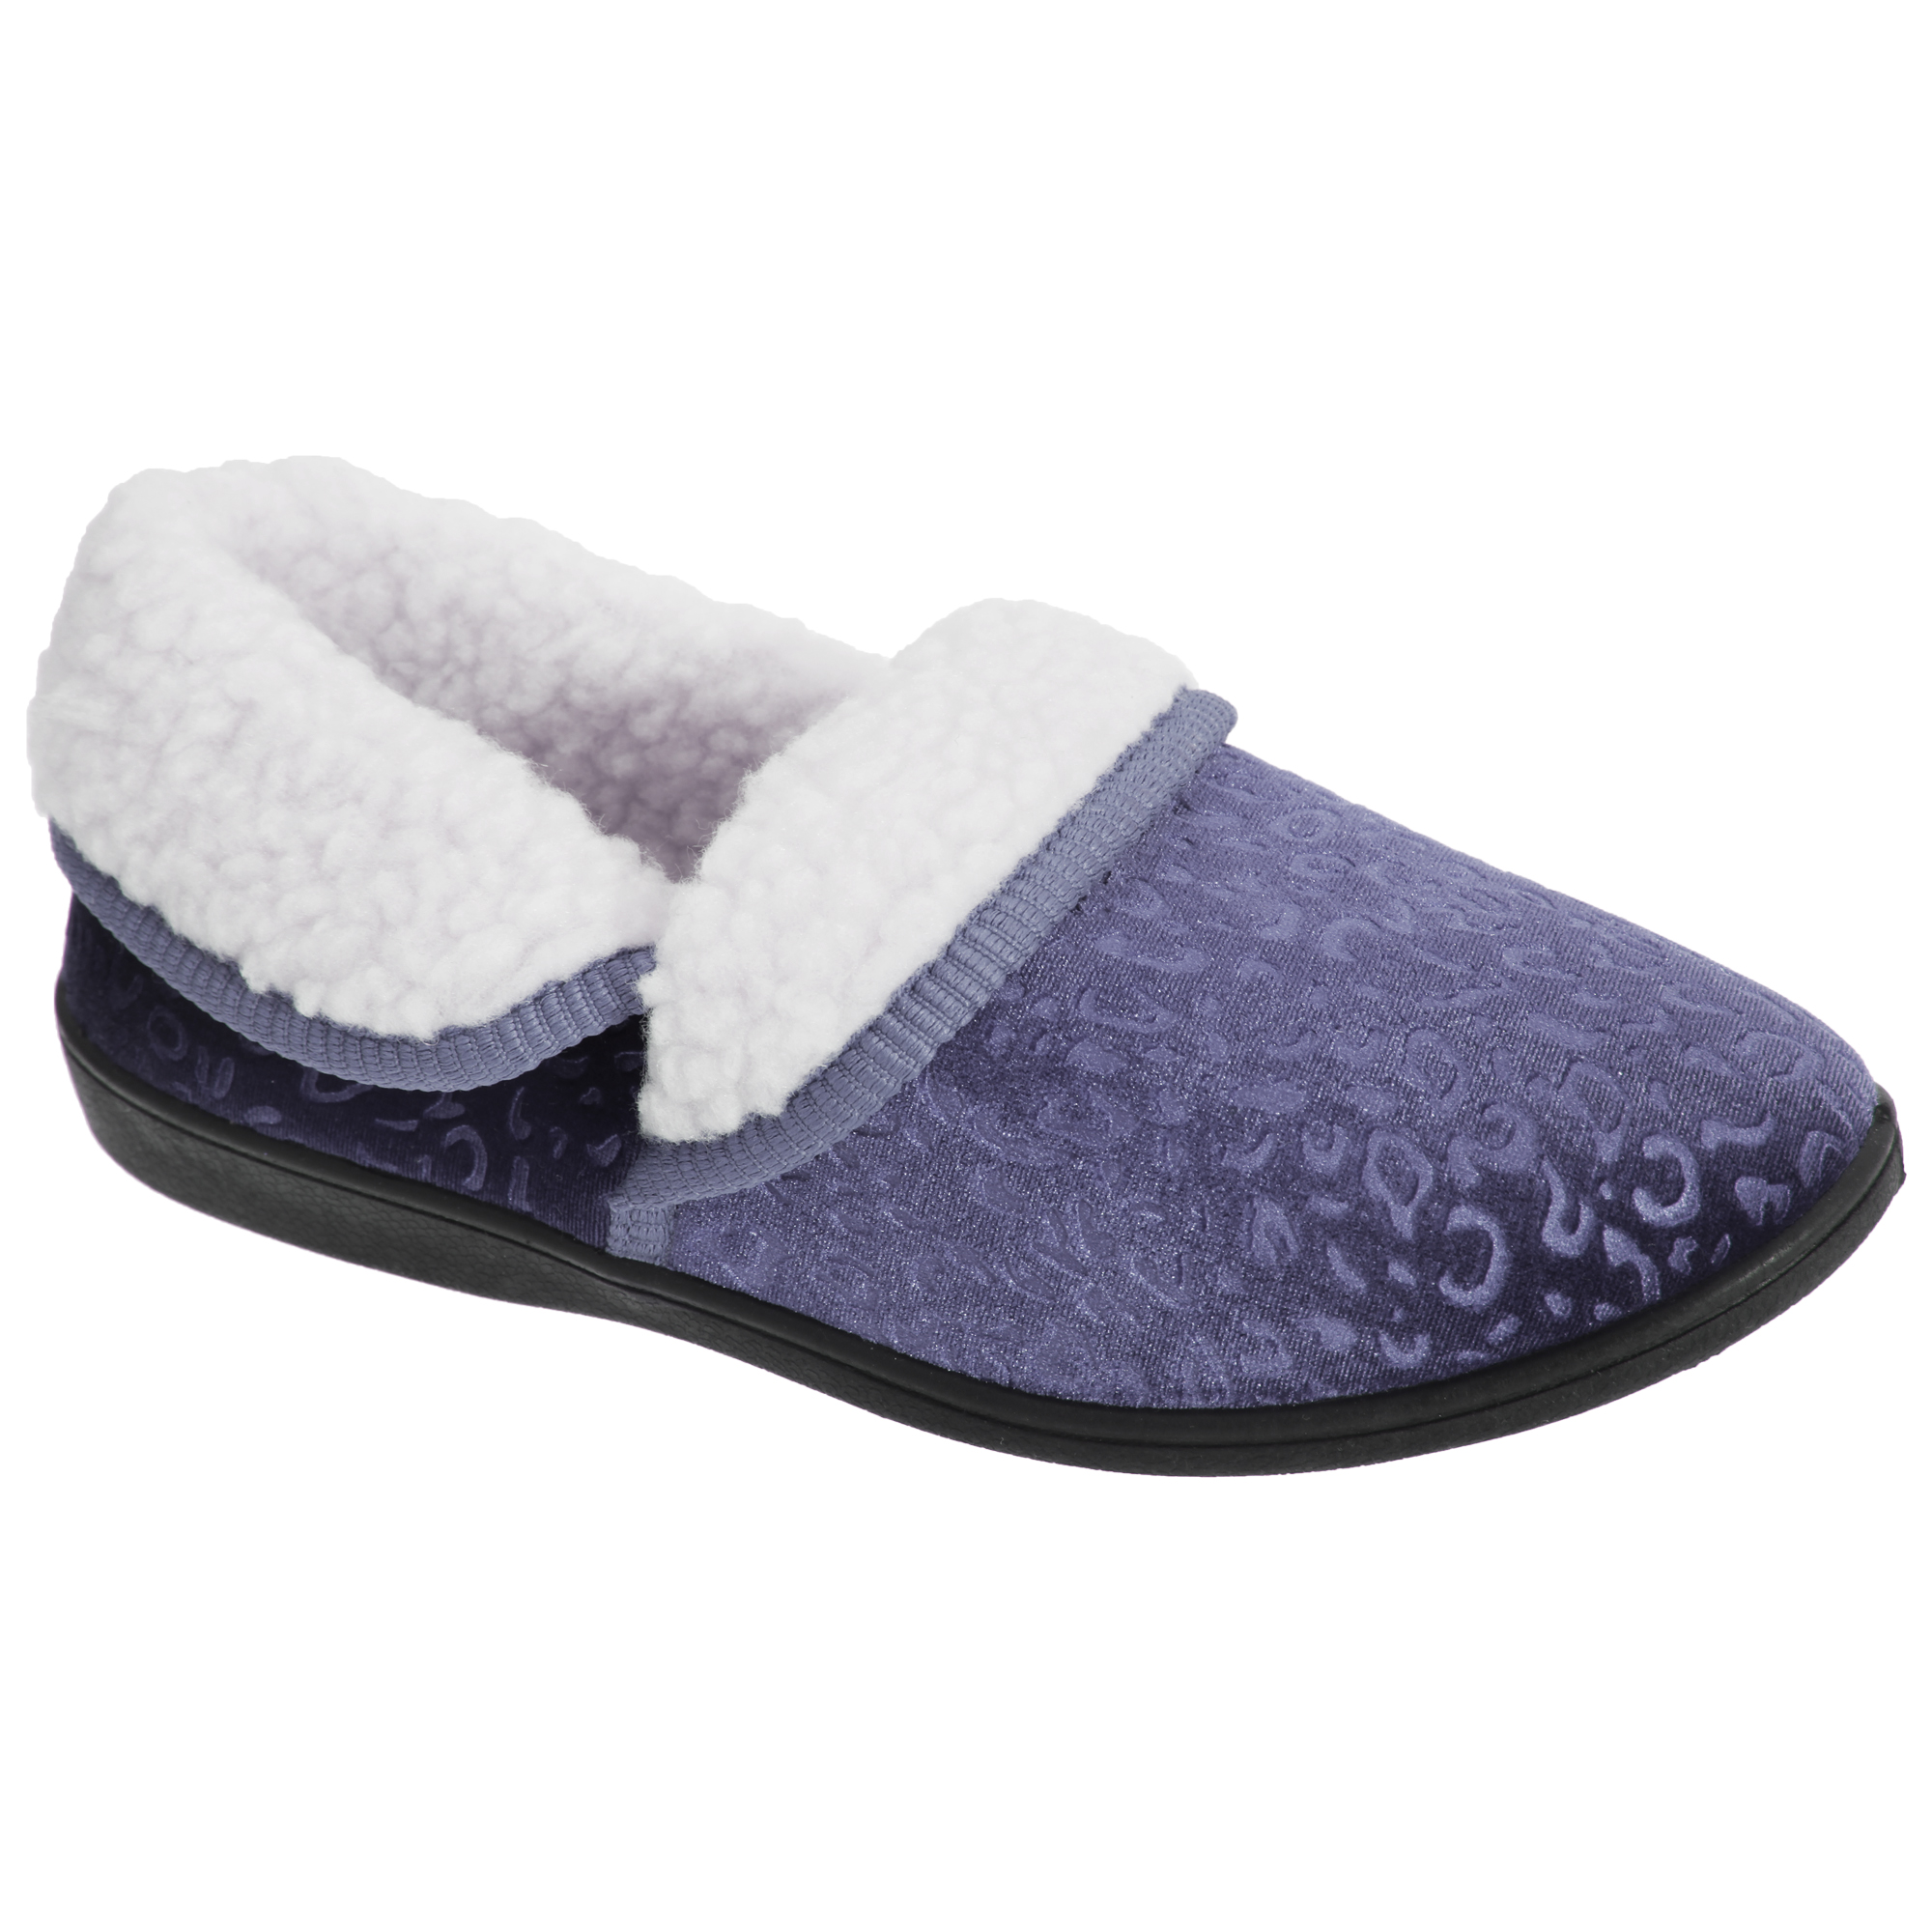 The Rugged Blue Soft Fleece Lined Slippers are perfect for in-house and feature a hard bottom sole for extra protection. Each pair of slippers contains a high quality foam insole and the entire slipper is covered in soft fleece for extra comfort.